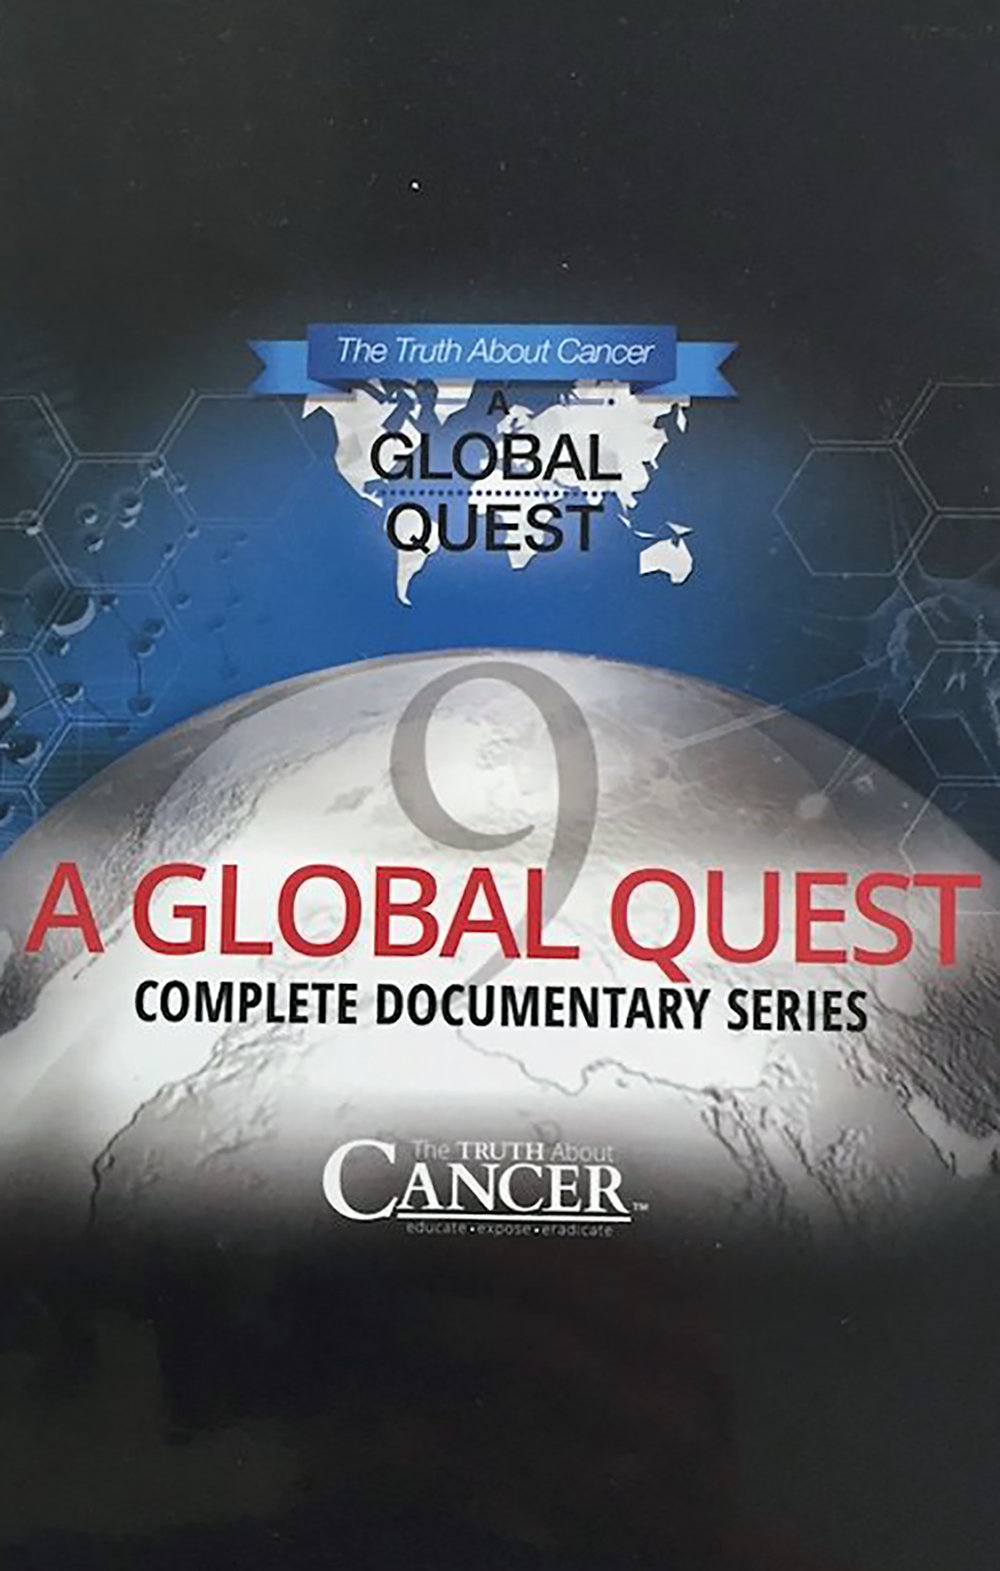 Ty Bollinger traveled the globe to interview 100+ alternative doctors, scientists and survivors, who have united to show the world how to prevent and heal cancer. He put it all together in an incredible 9-part docu-series.